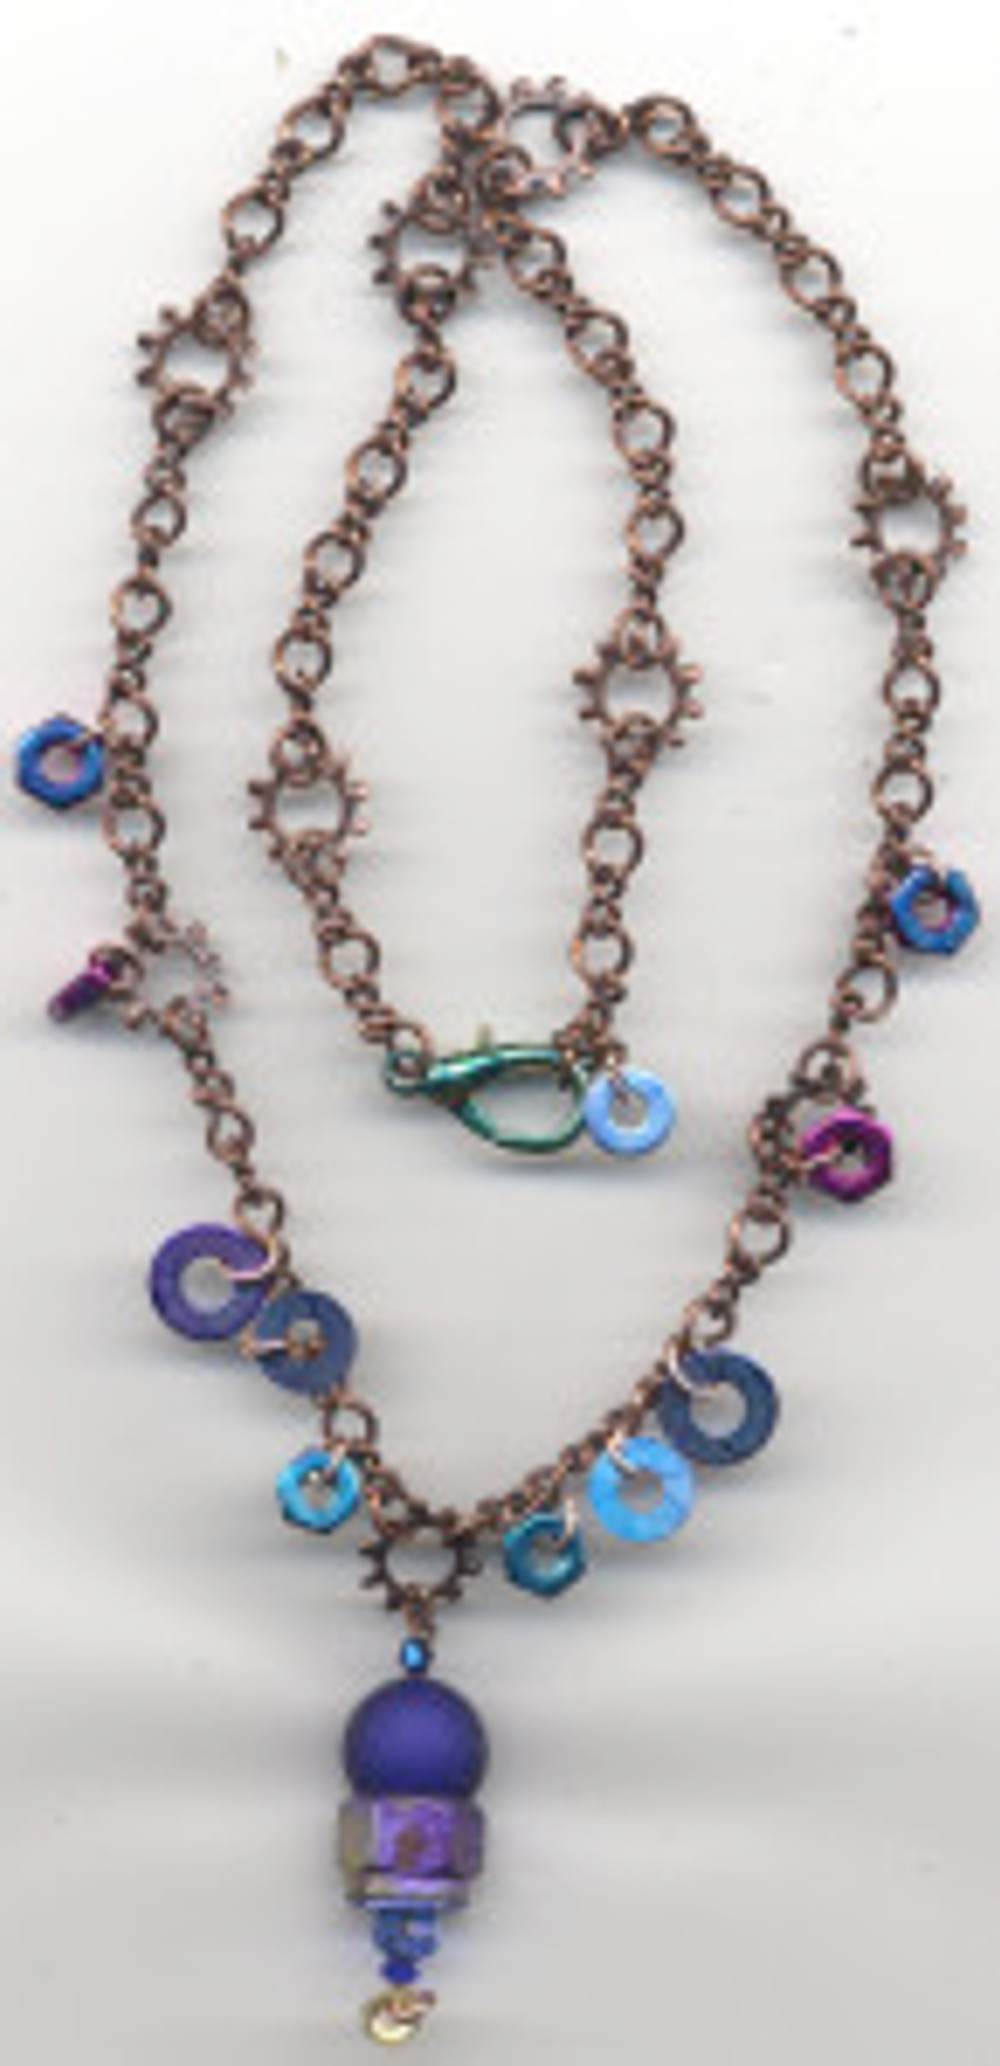 Blue Moon - SP66 steampunk necklace